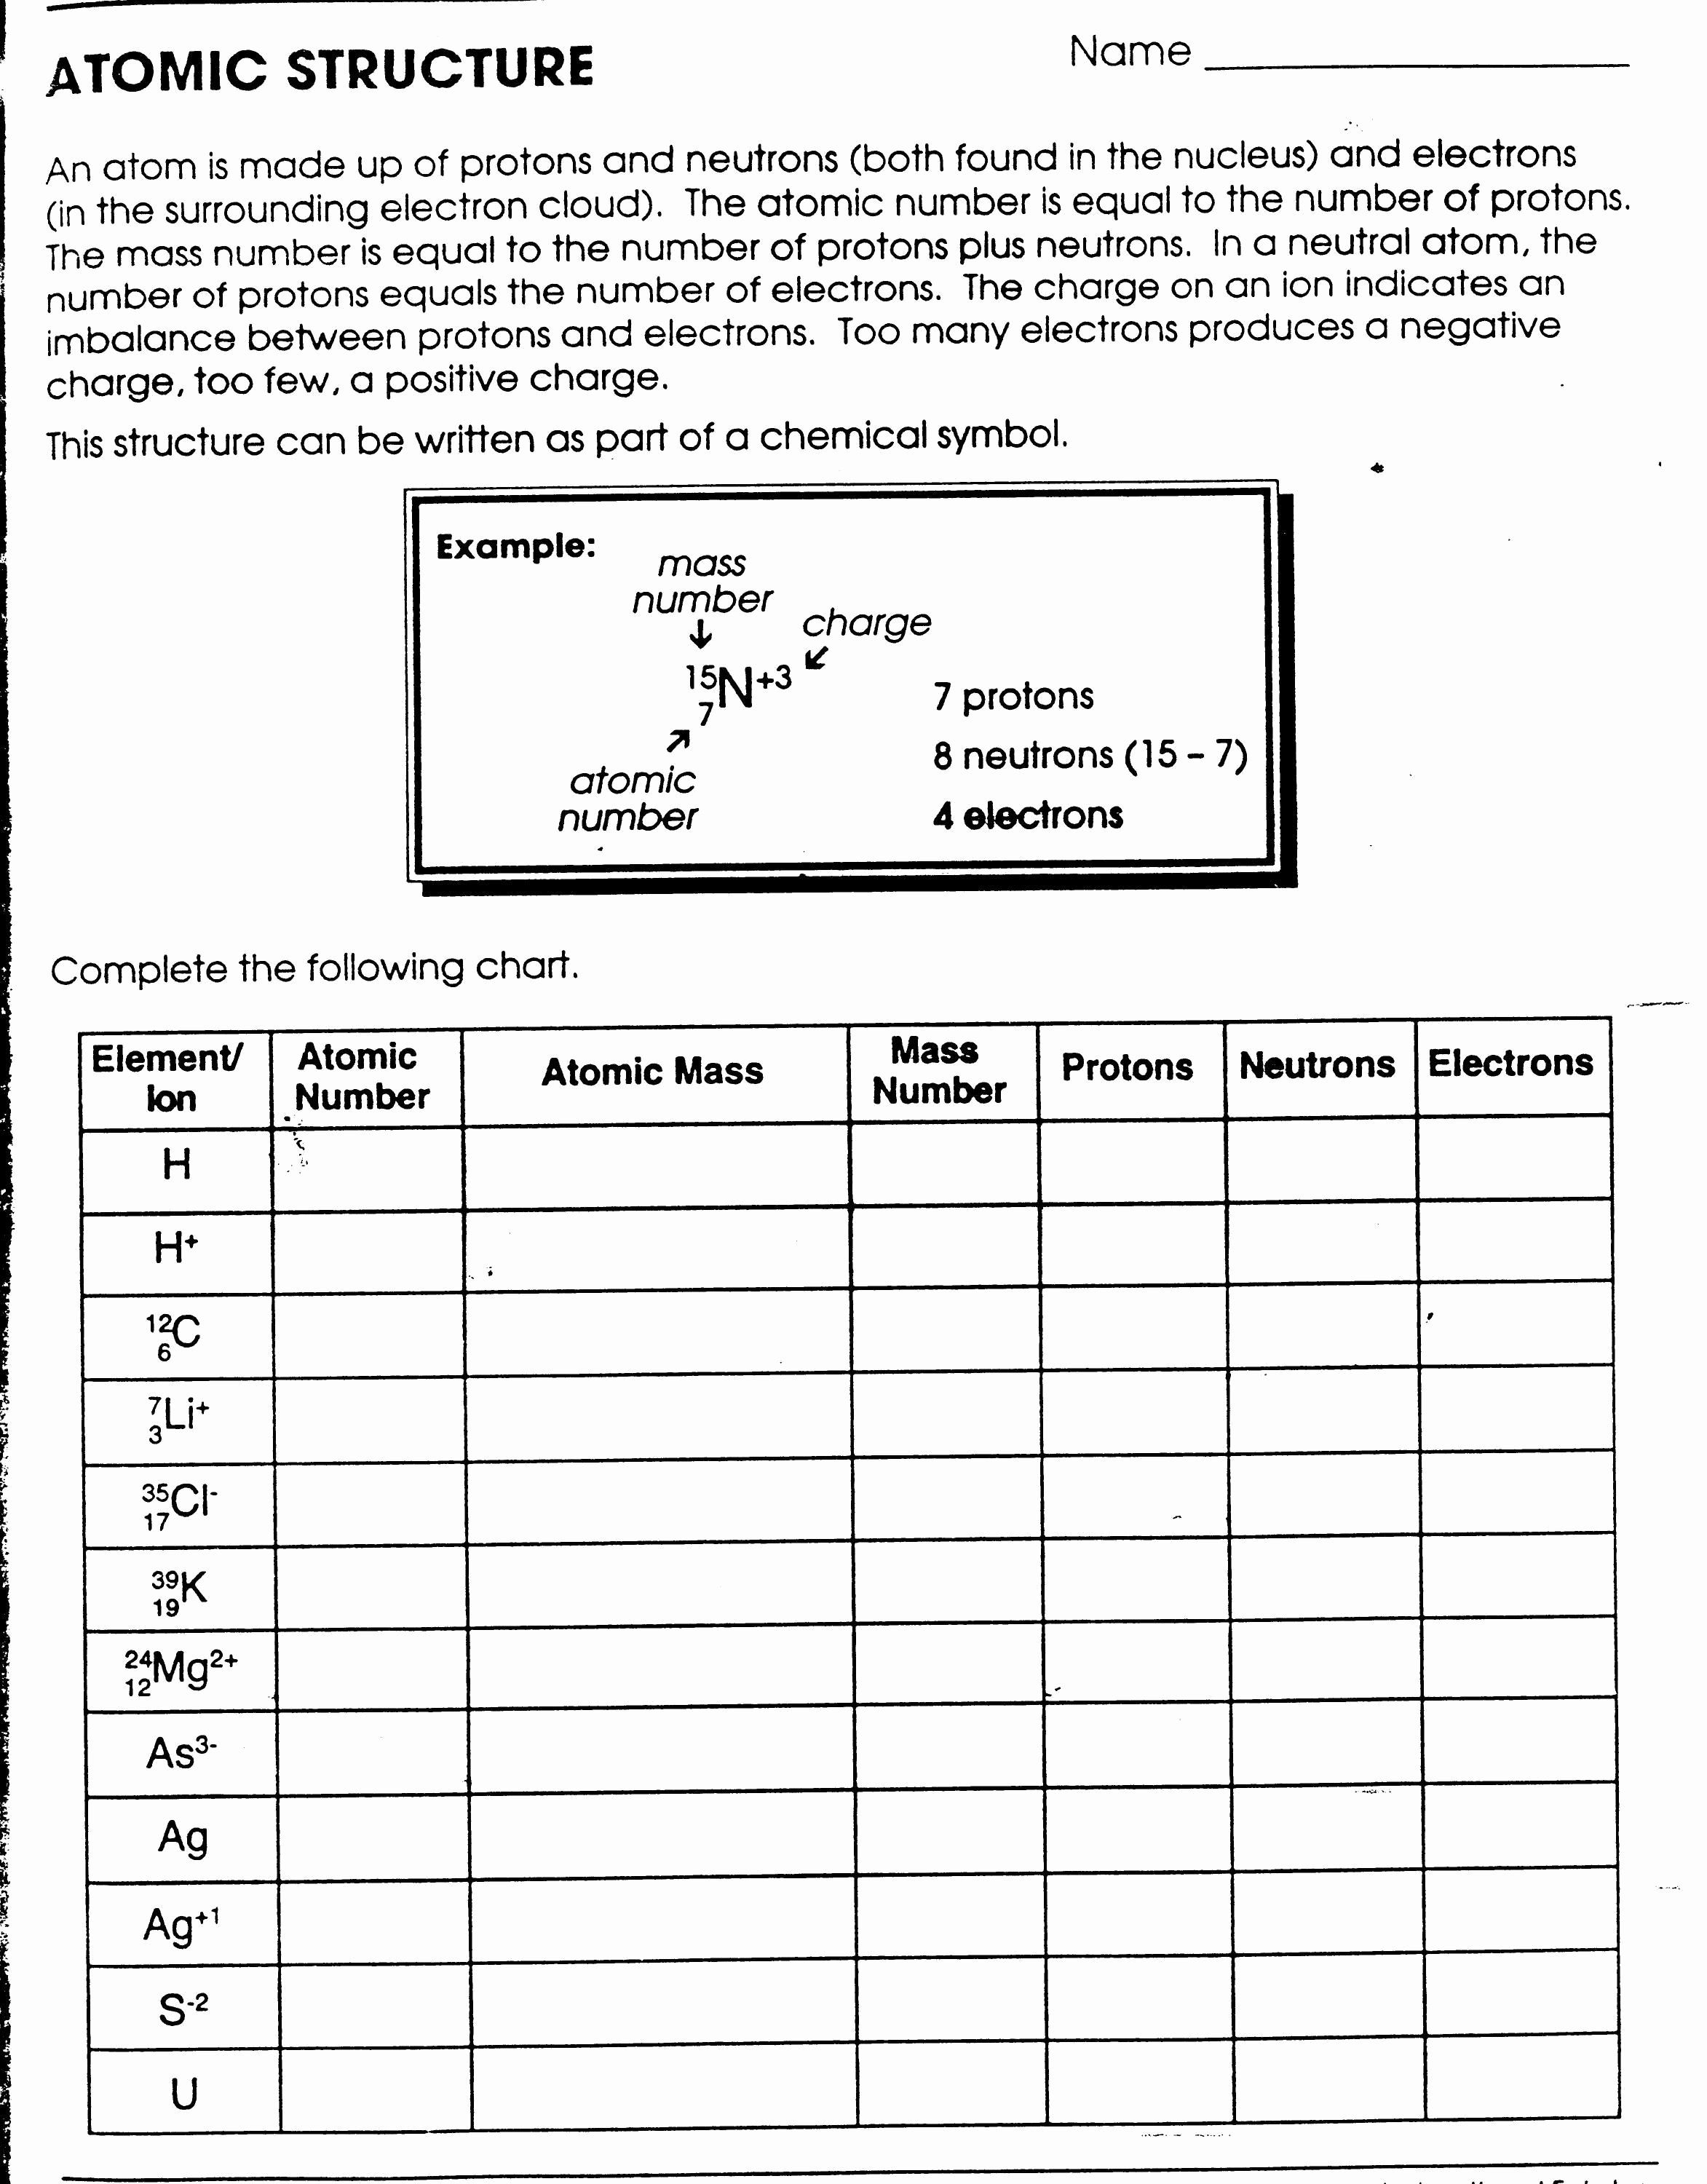 Atomic Structure Worksheet Answers Chemistry Elegant